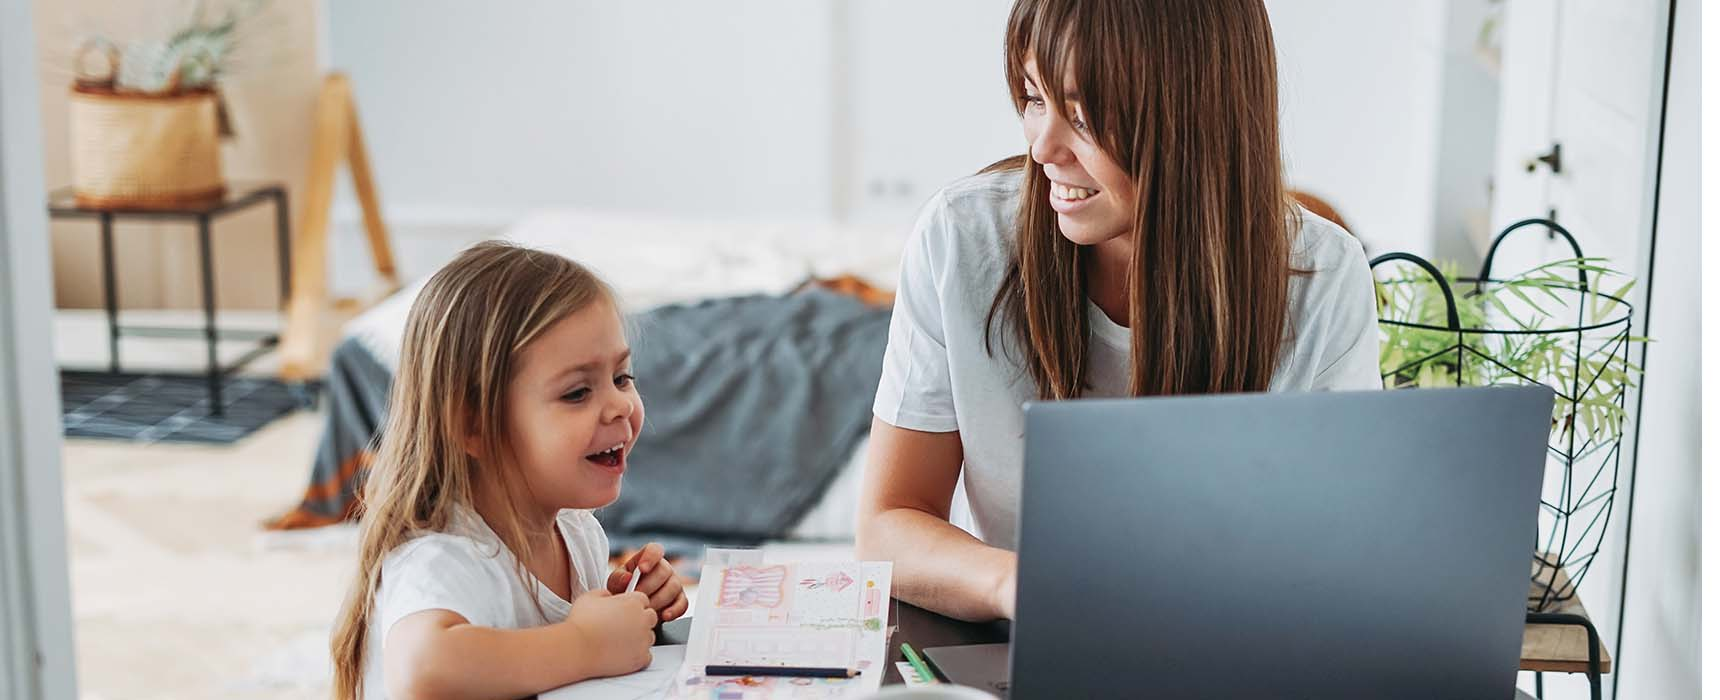 Photo of a young woman learning about retirement planning through an online webinar.